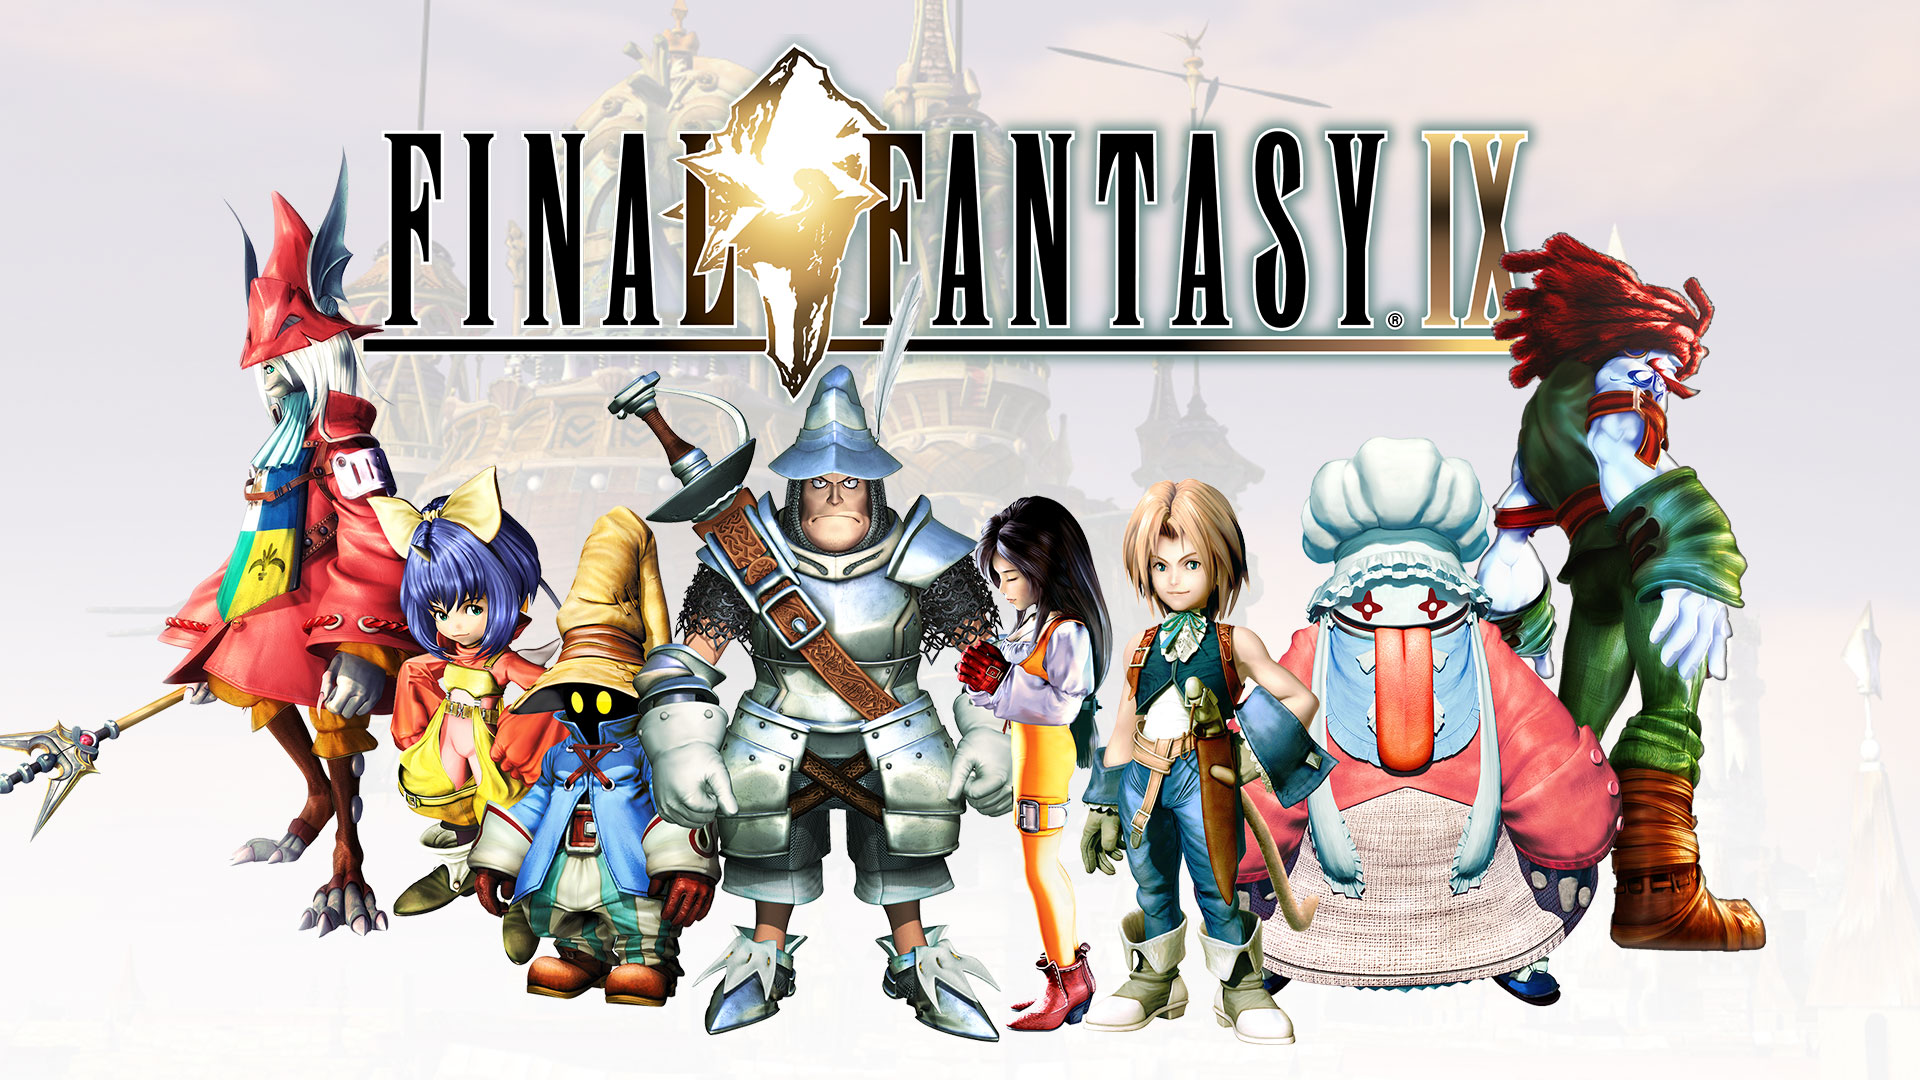 UPDATED Final Fantasy IX Releases On PlayStation 4 Along